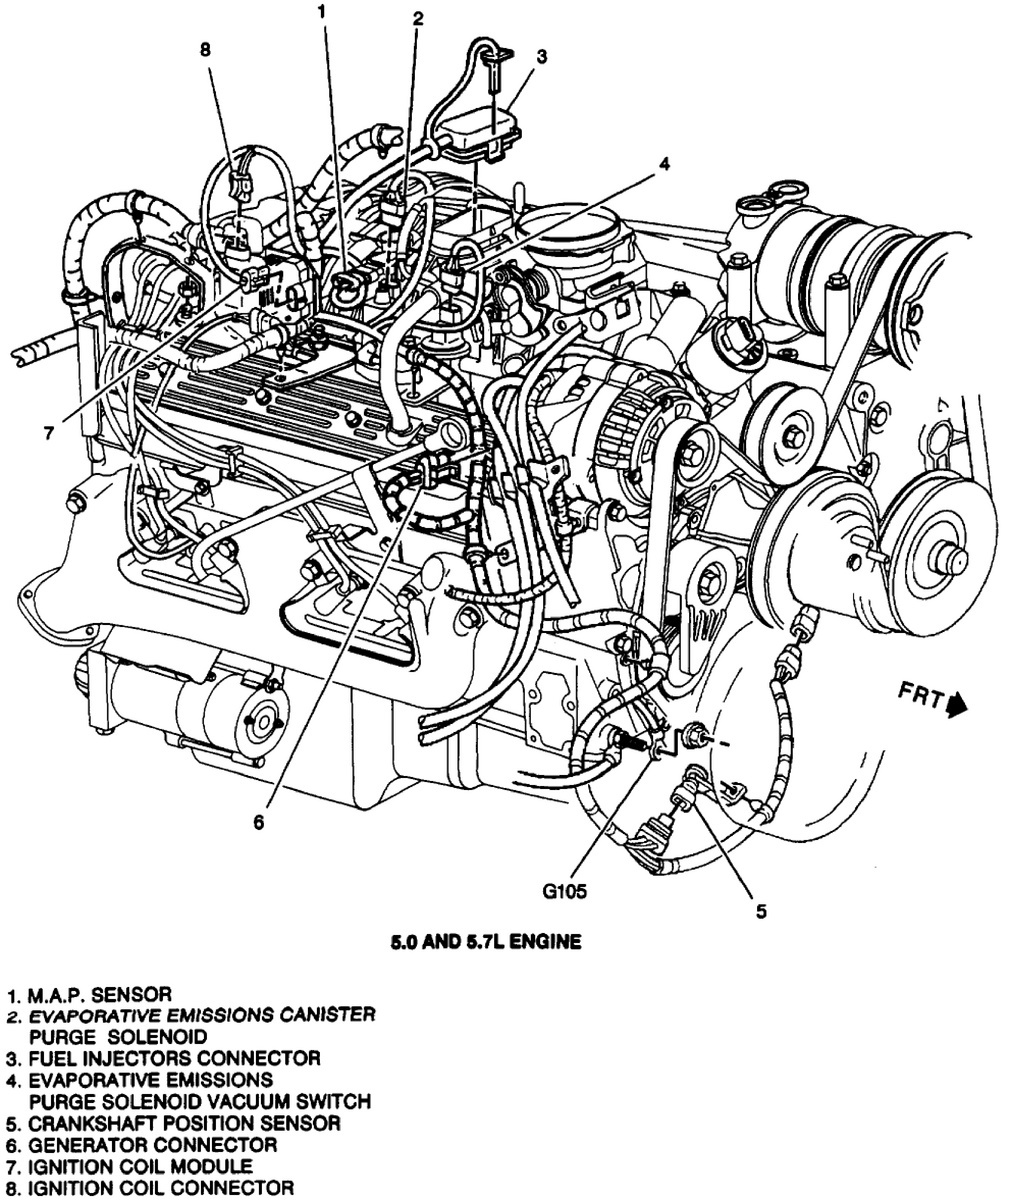 97 Lumina Wiring Diagram Library 1989 Chevy 1500 Silverado Chevrolet Corsica Questions Where Is Crankshaft Sensor On Cargurus 92 Specs